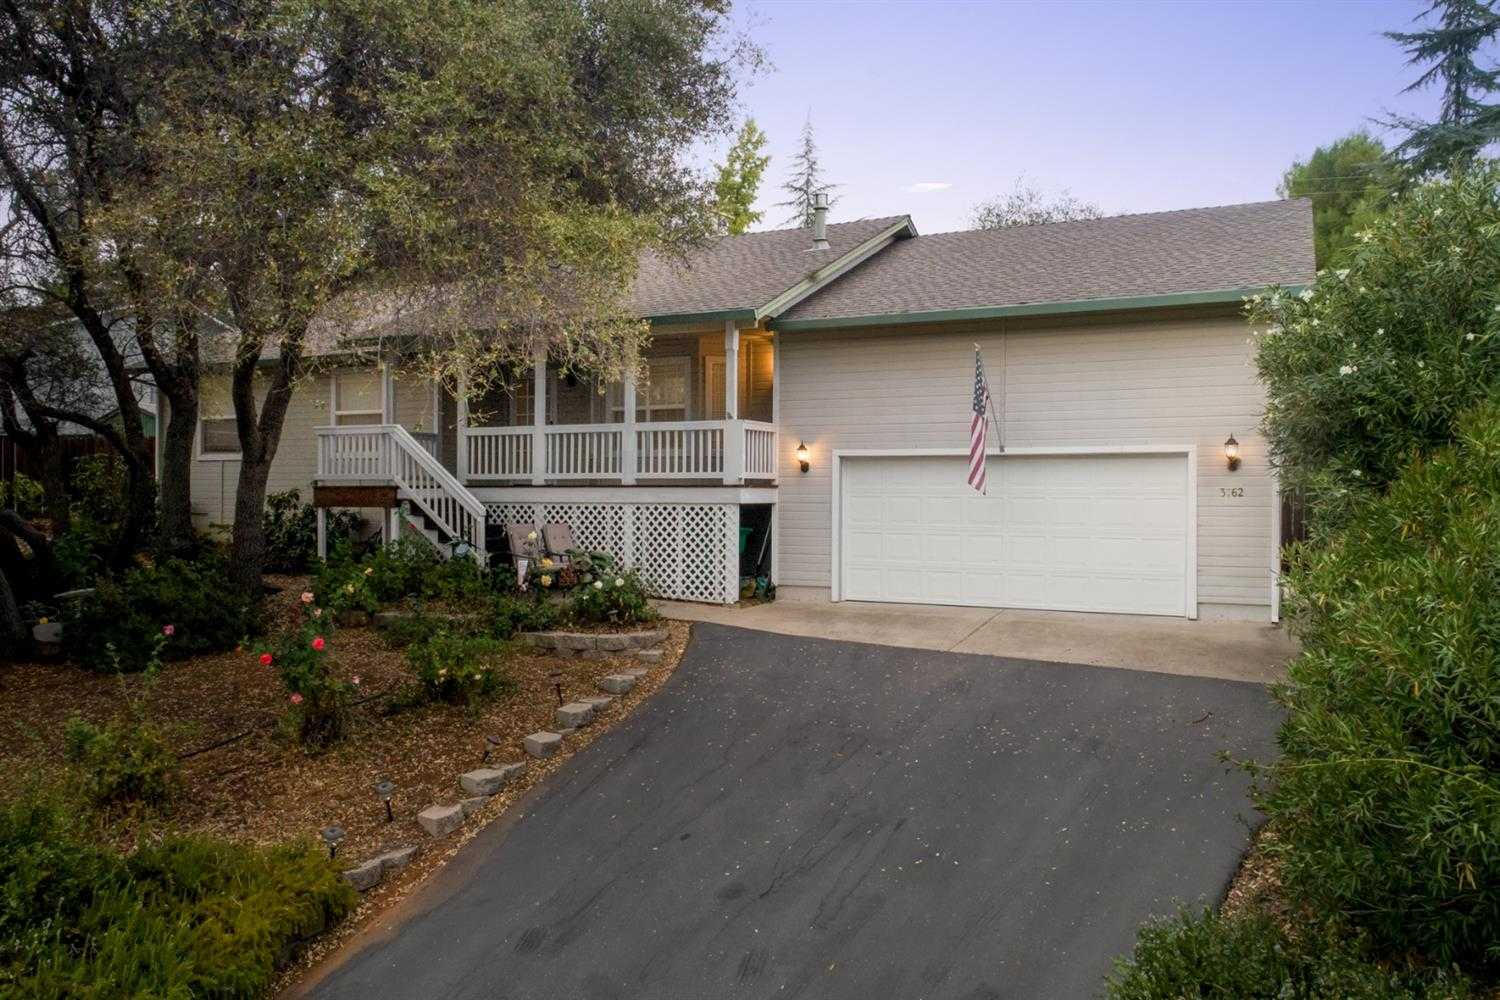 $417,000 - 4Br/2Ba -  for Sale in Cameron Park